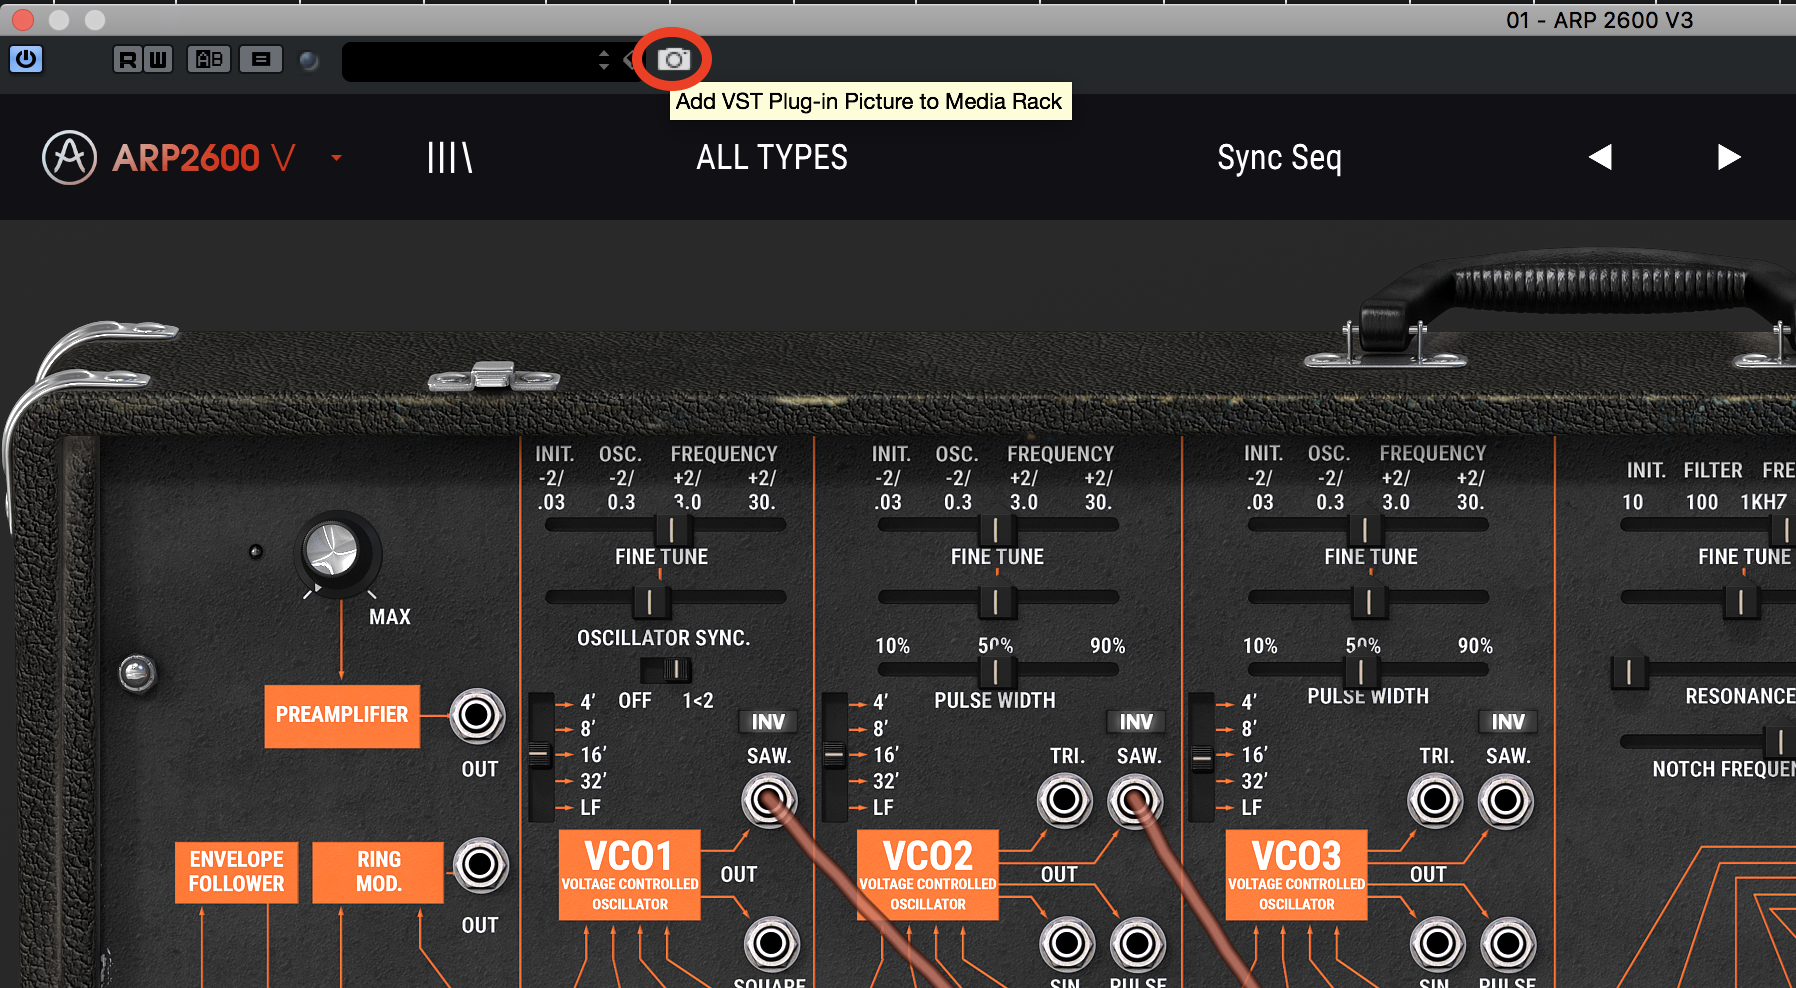 Add VST Plugin Picture to the Media Rack